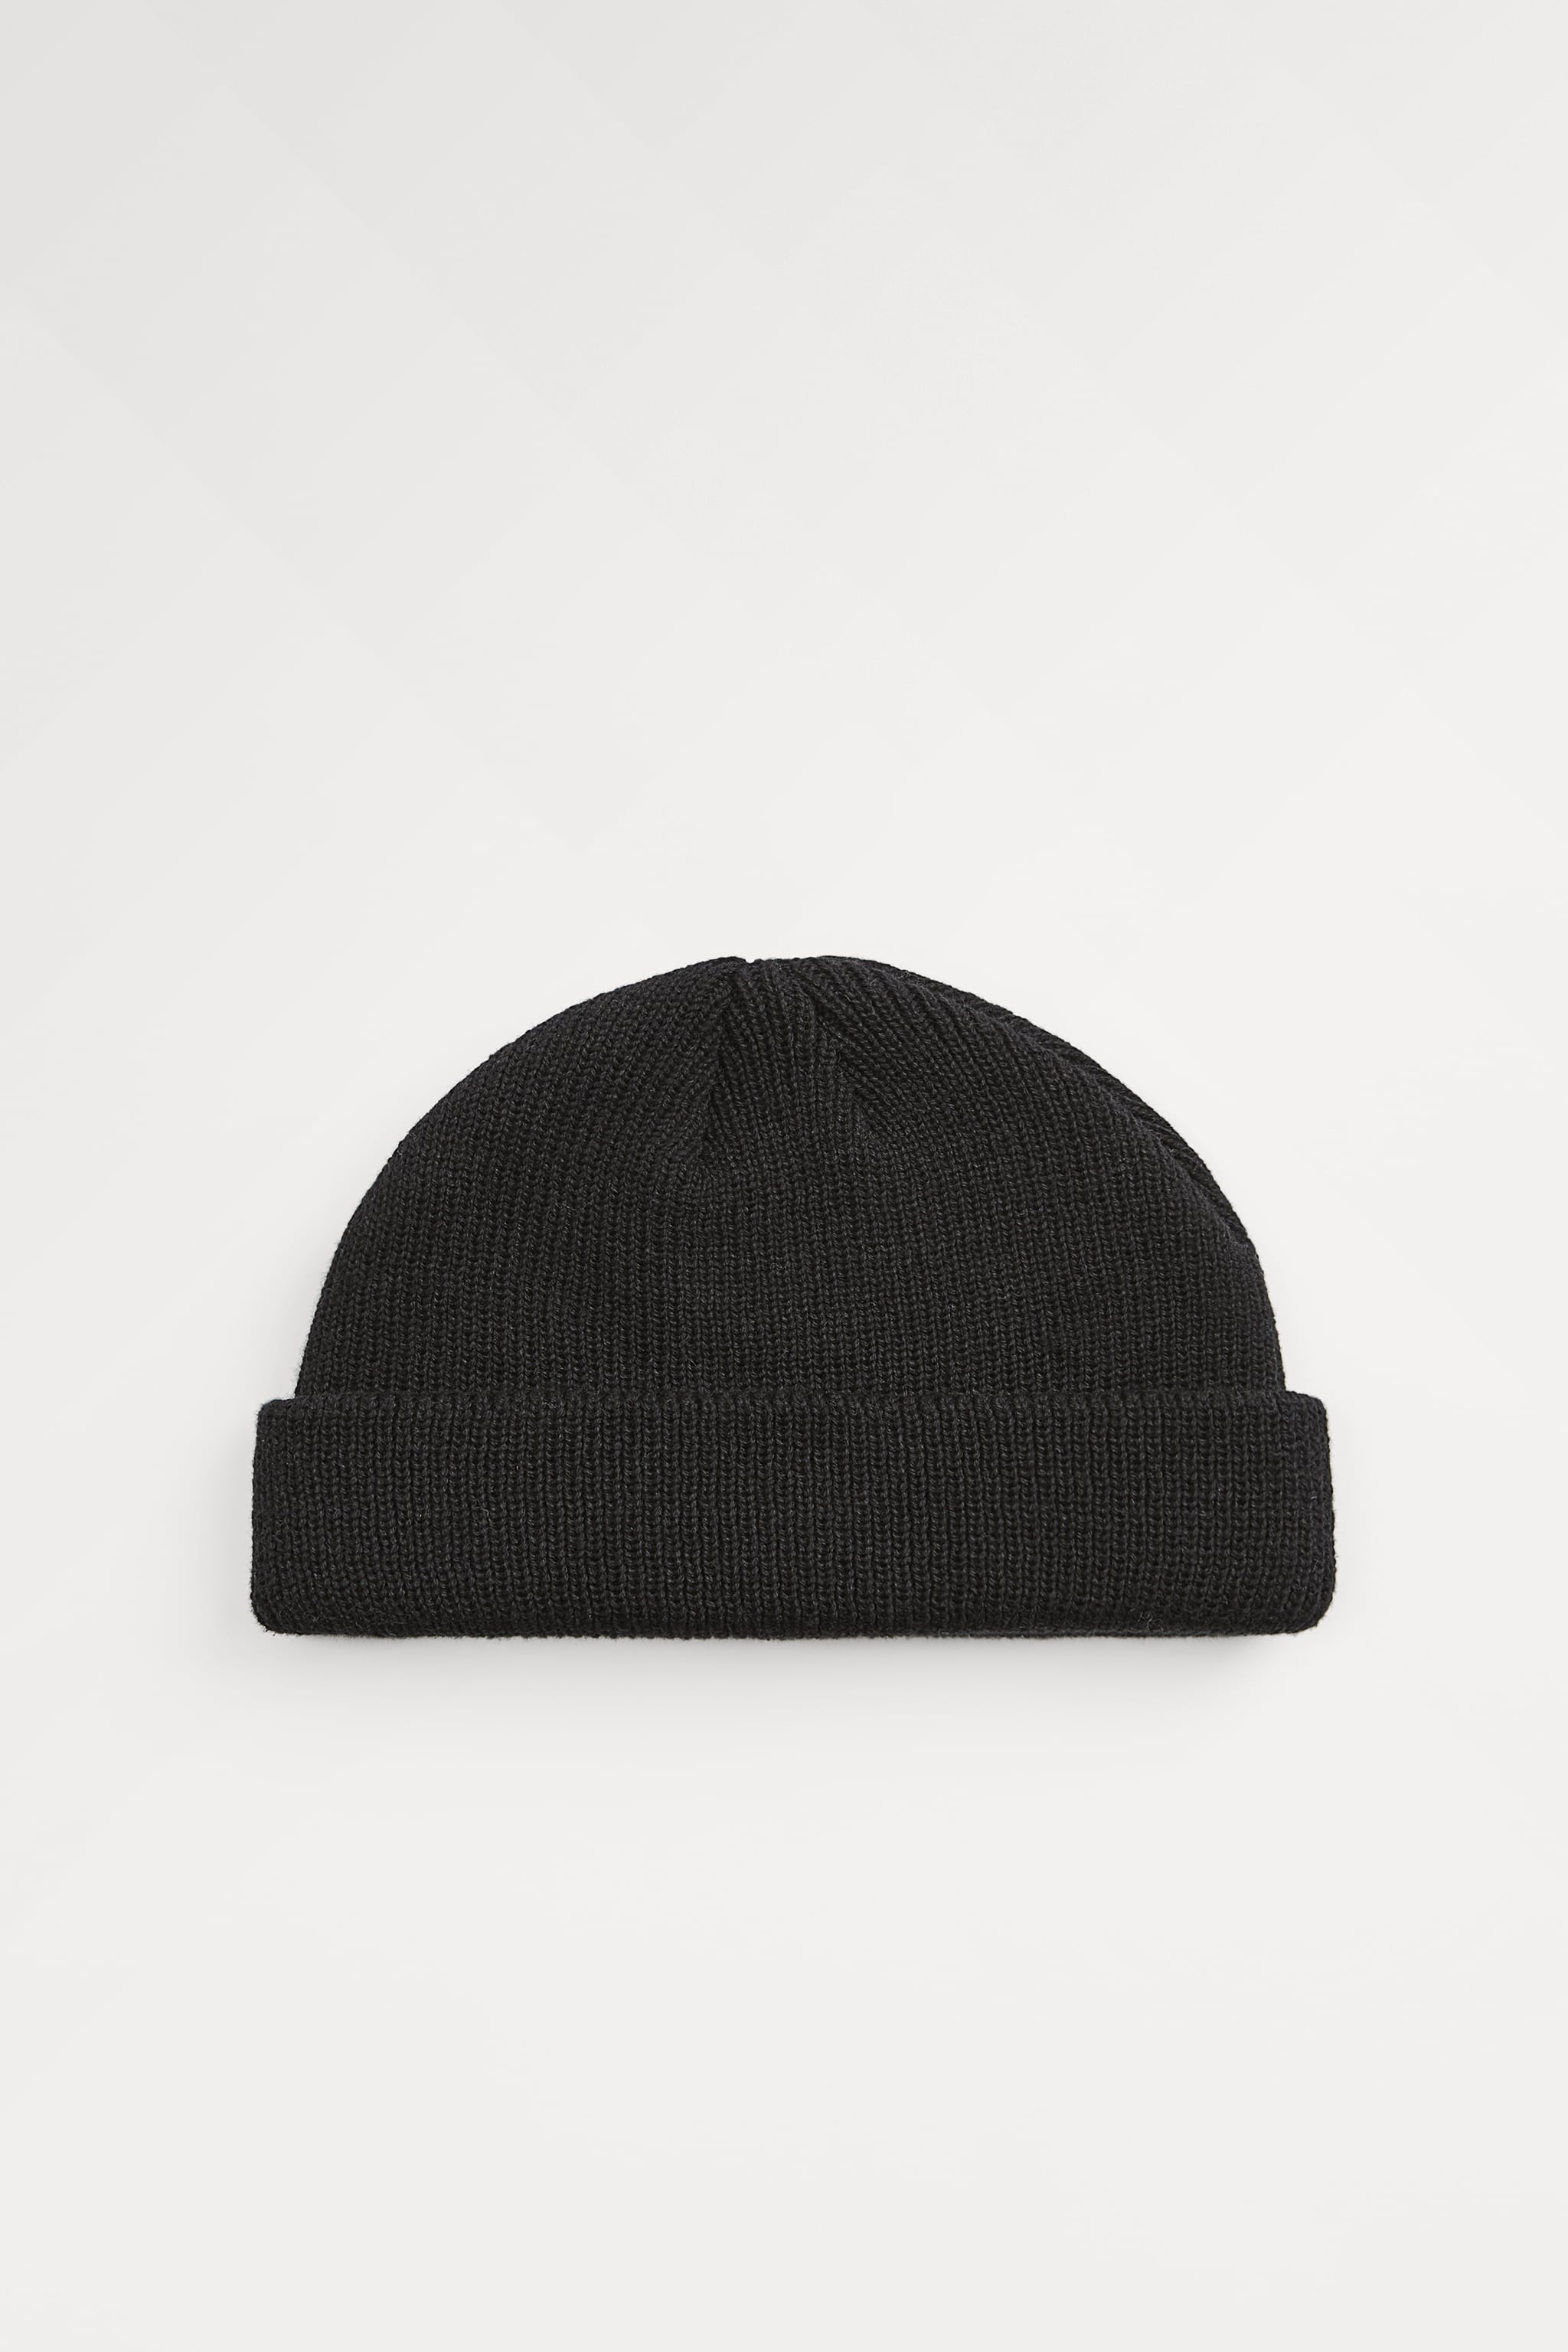 Zara SEAMED SHORT HAT